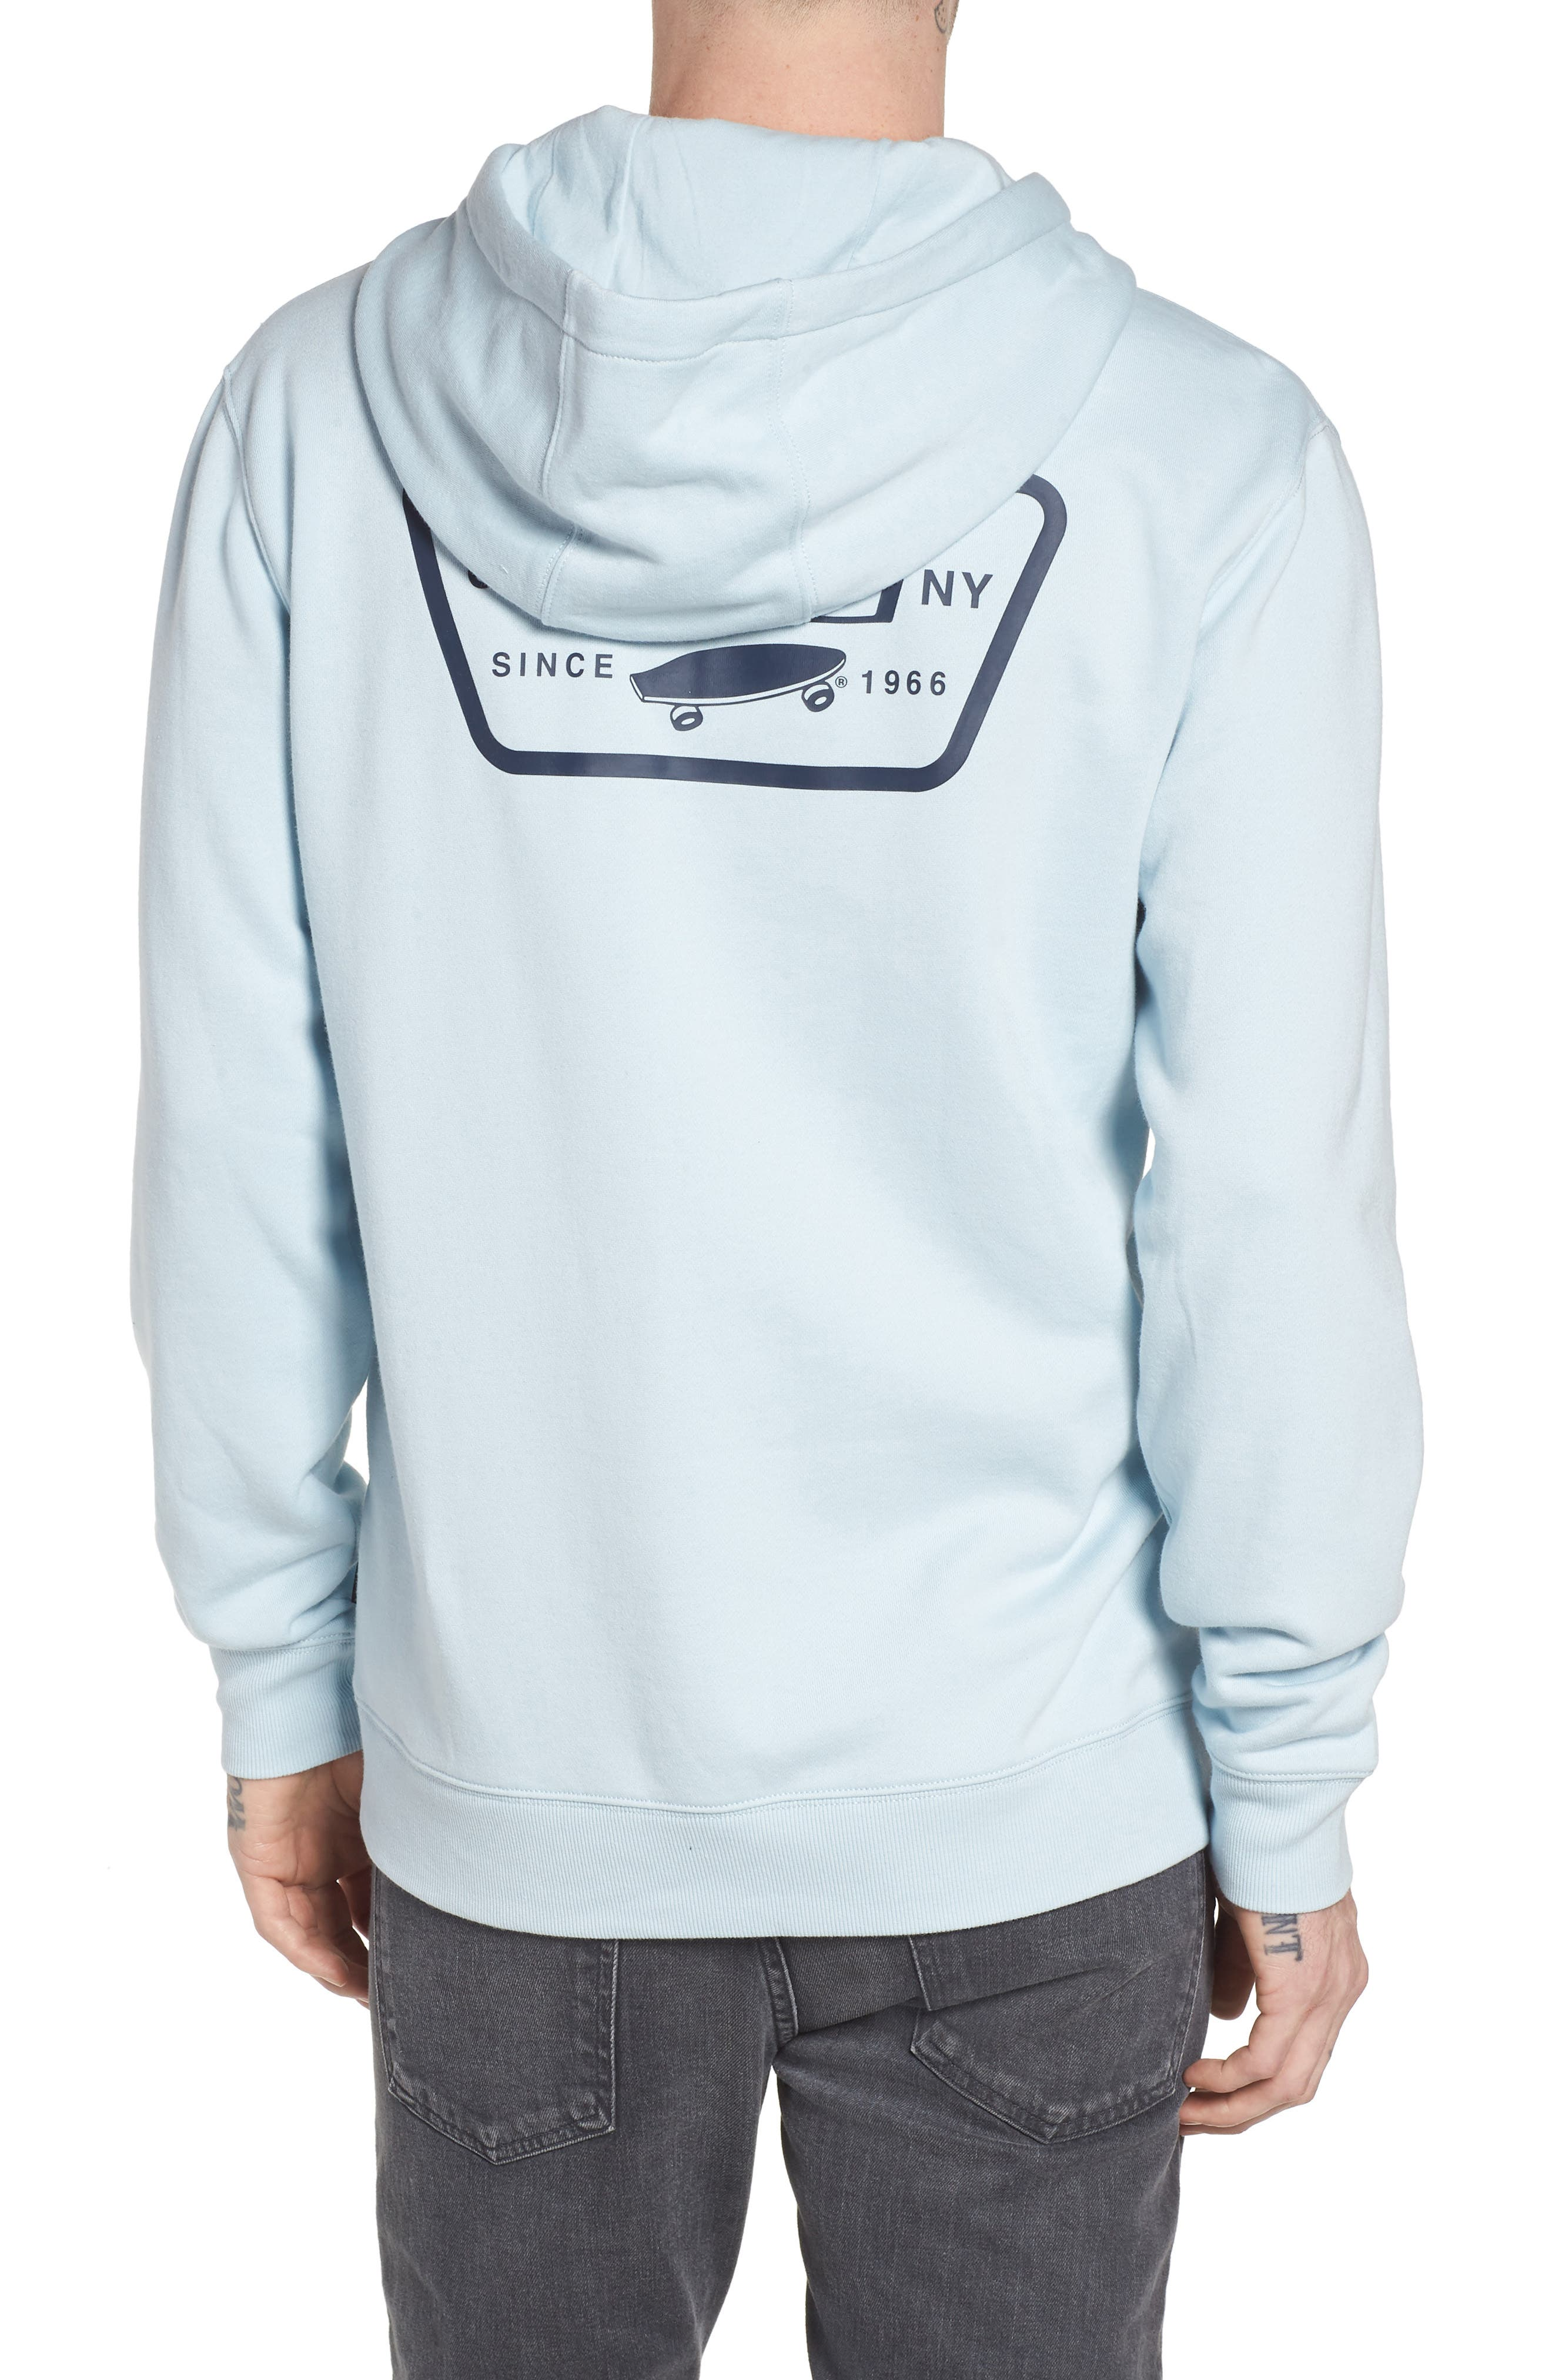 Full Patched Hoodie Sweatshirt,                             Alternate thumbnail 2, color,                             401